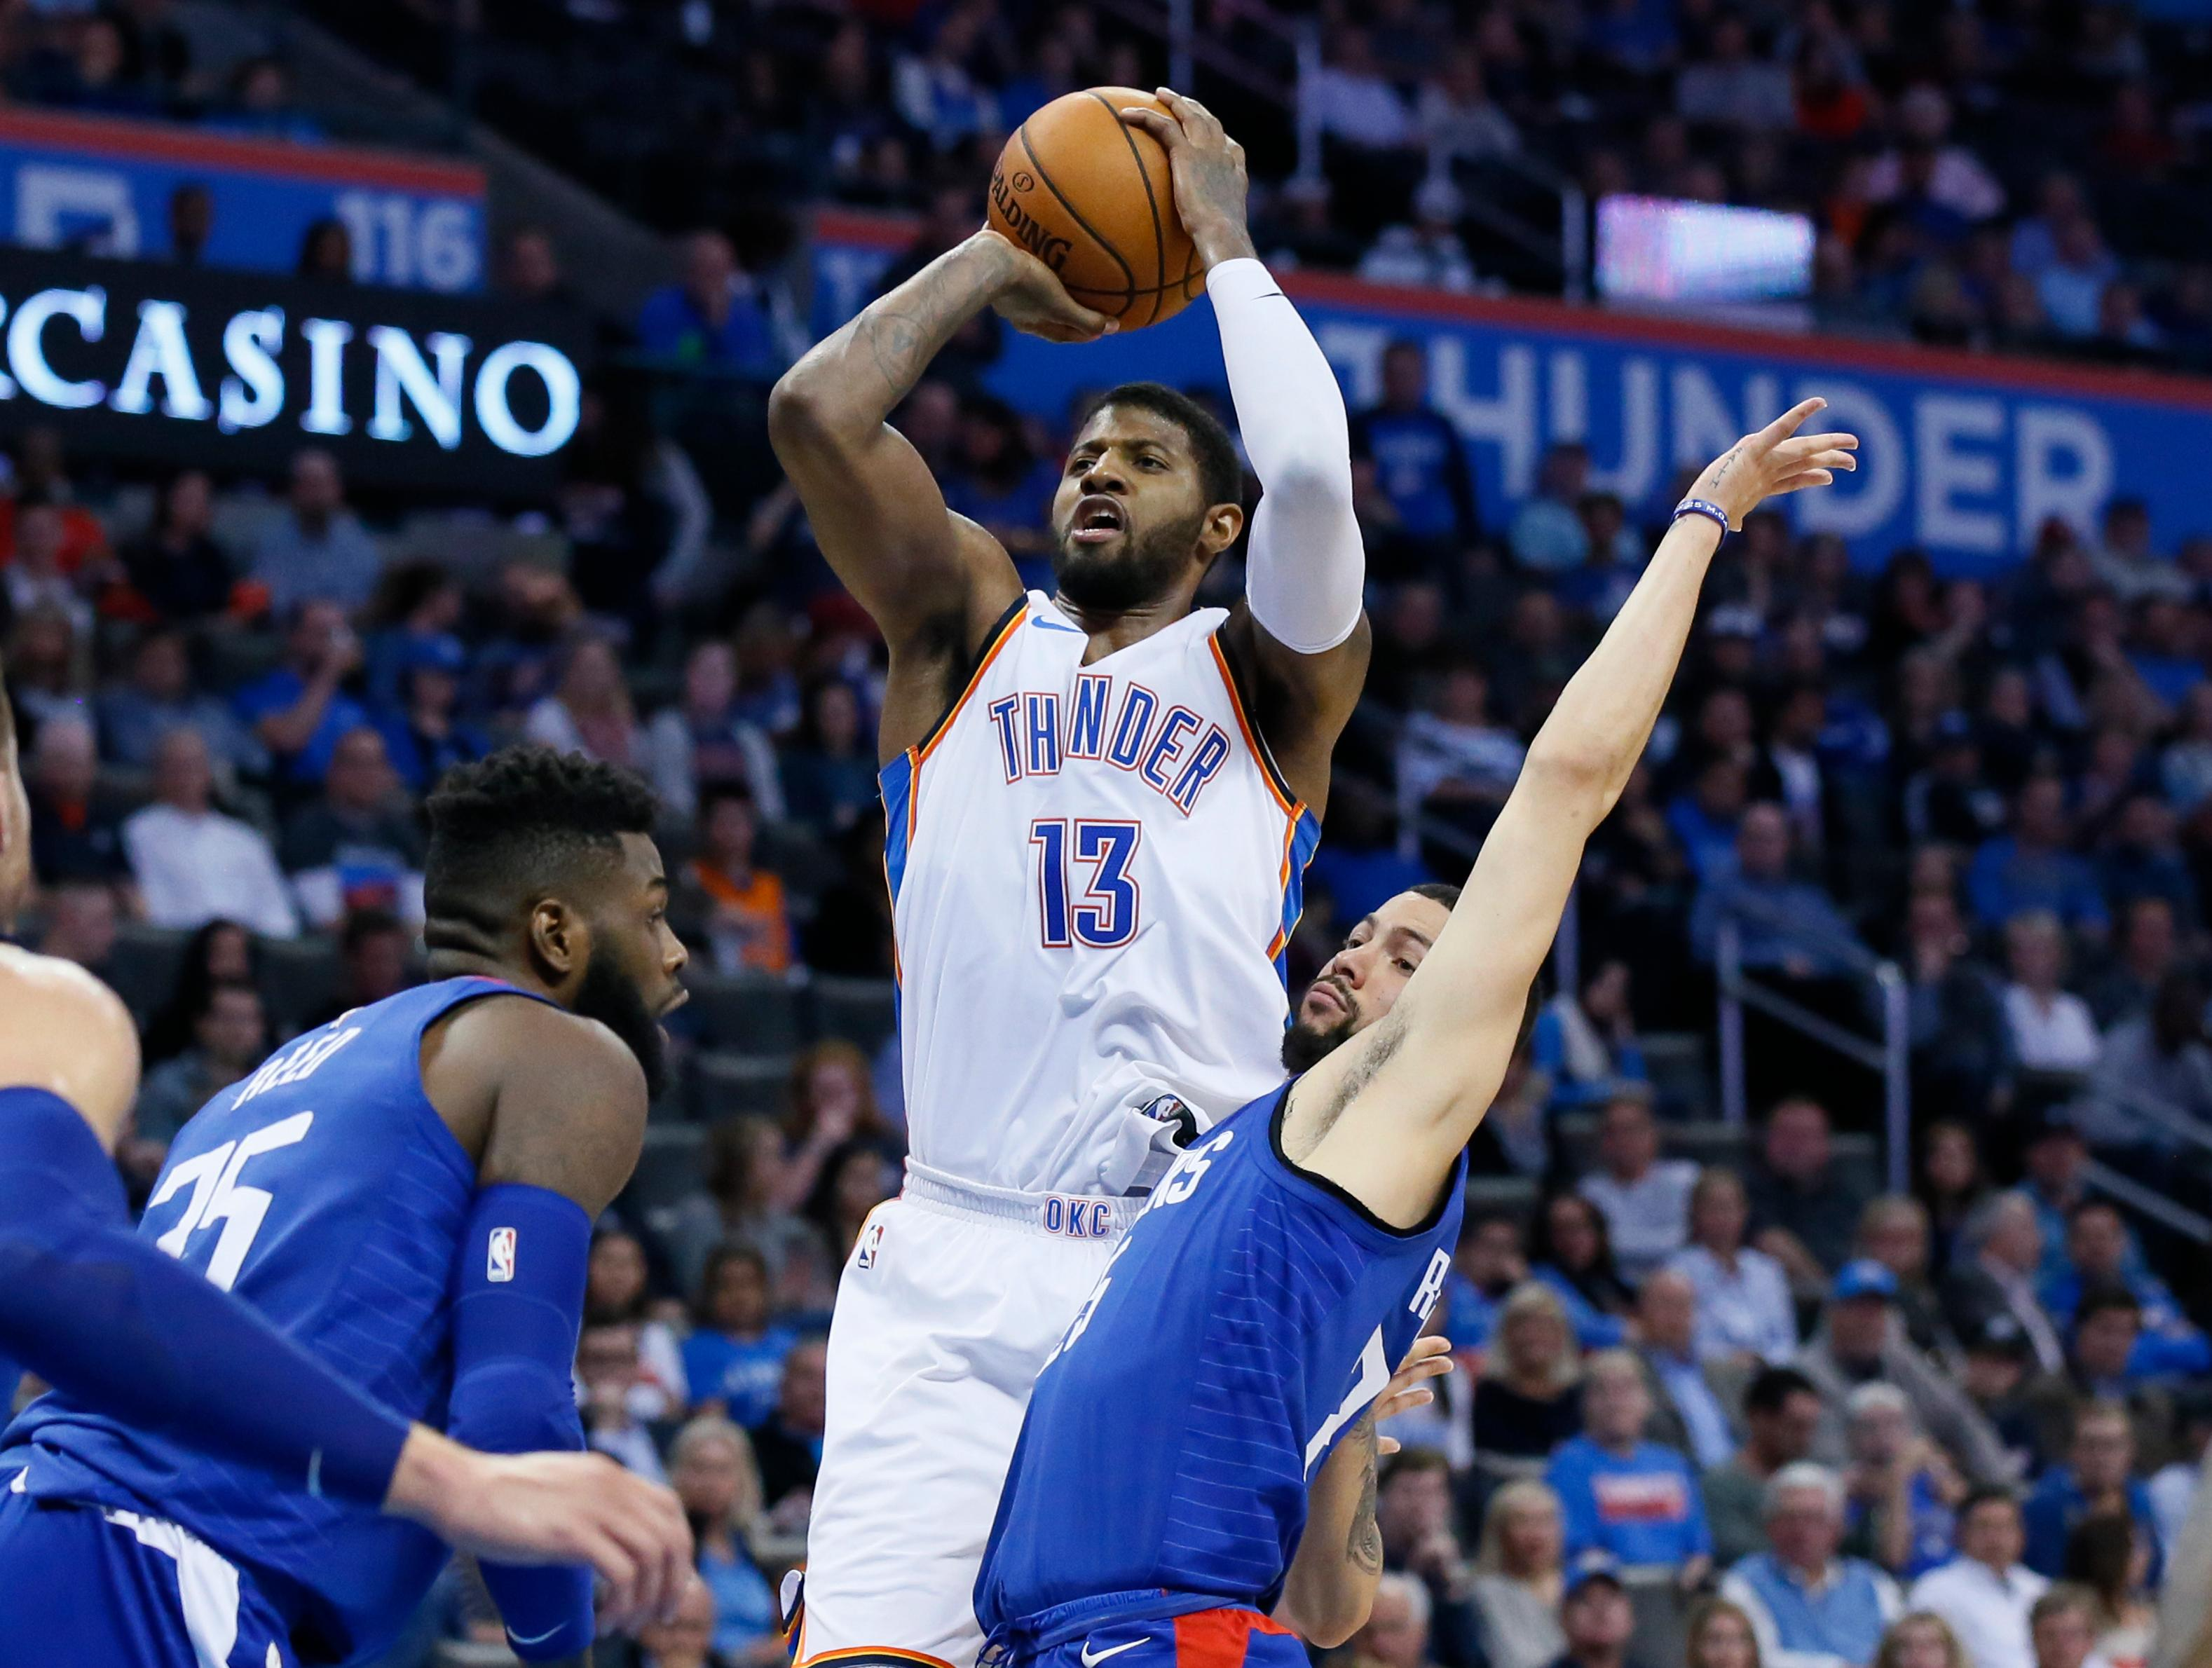 Oklahoma City Thunder forward Paul George (13) shoots between Los Angeles Clippers center Willie Reed, left, and guard Austin Rivers, right, in the third quarter of an NBA basketball game in Oklahoma City, Friday, Nov. 10, 2017. Oklahoma City won 120-111. (AP Photo/Sue Ogrocki)